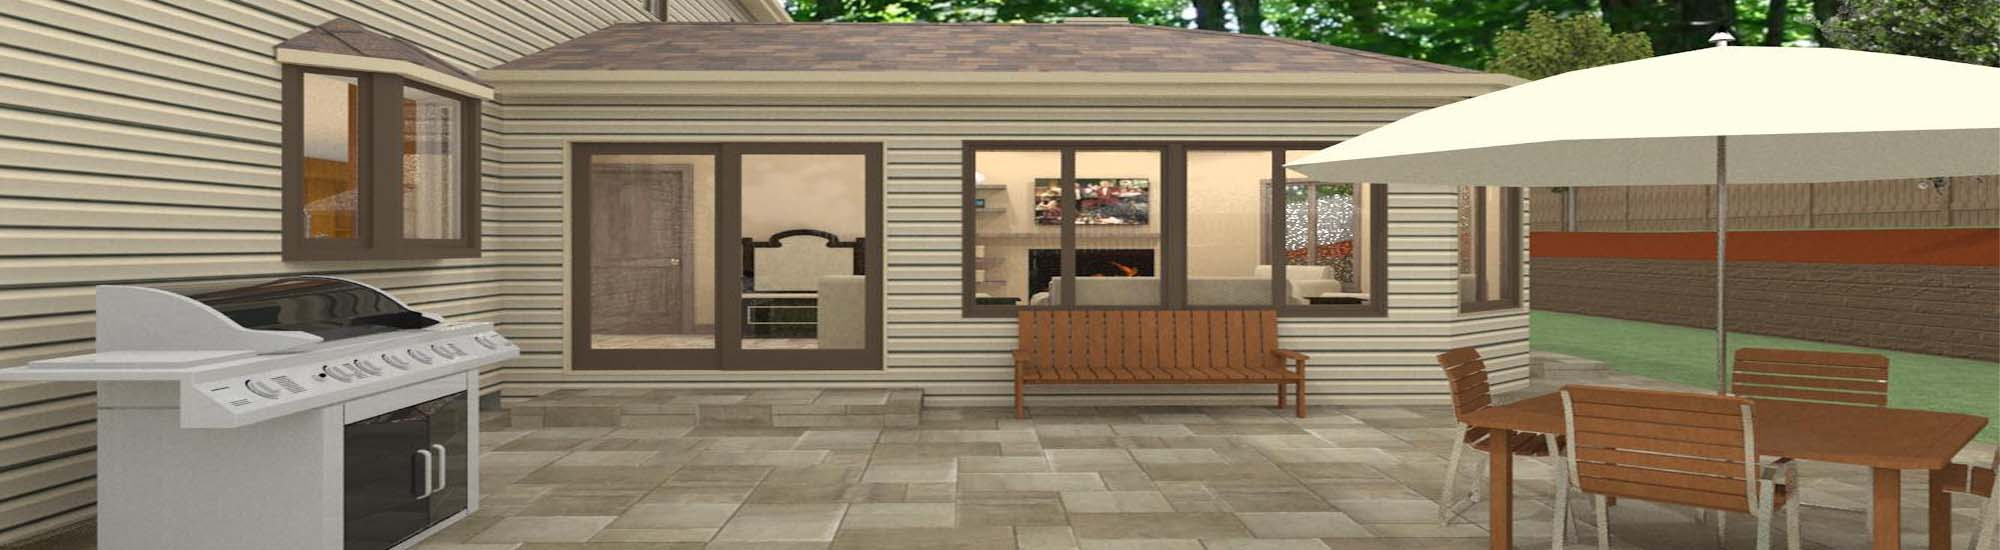 outdoor-living-space-cad-2-design-build-pros